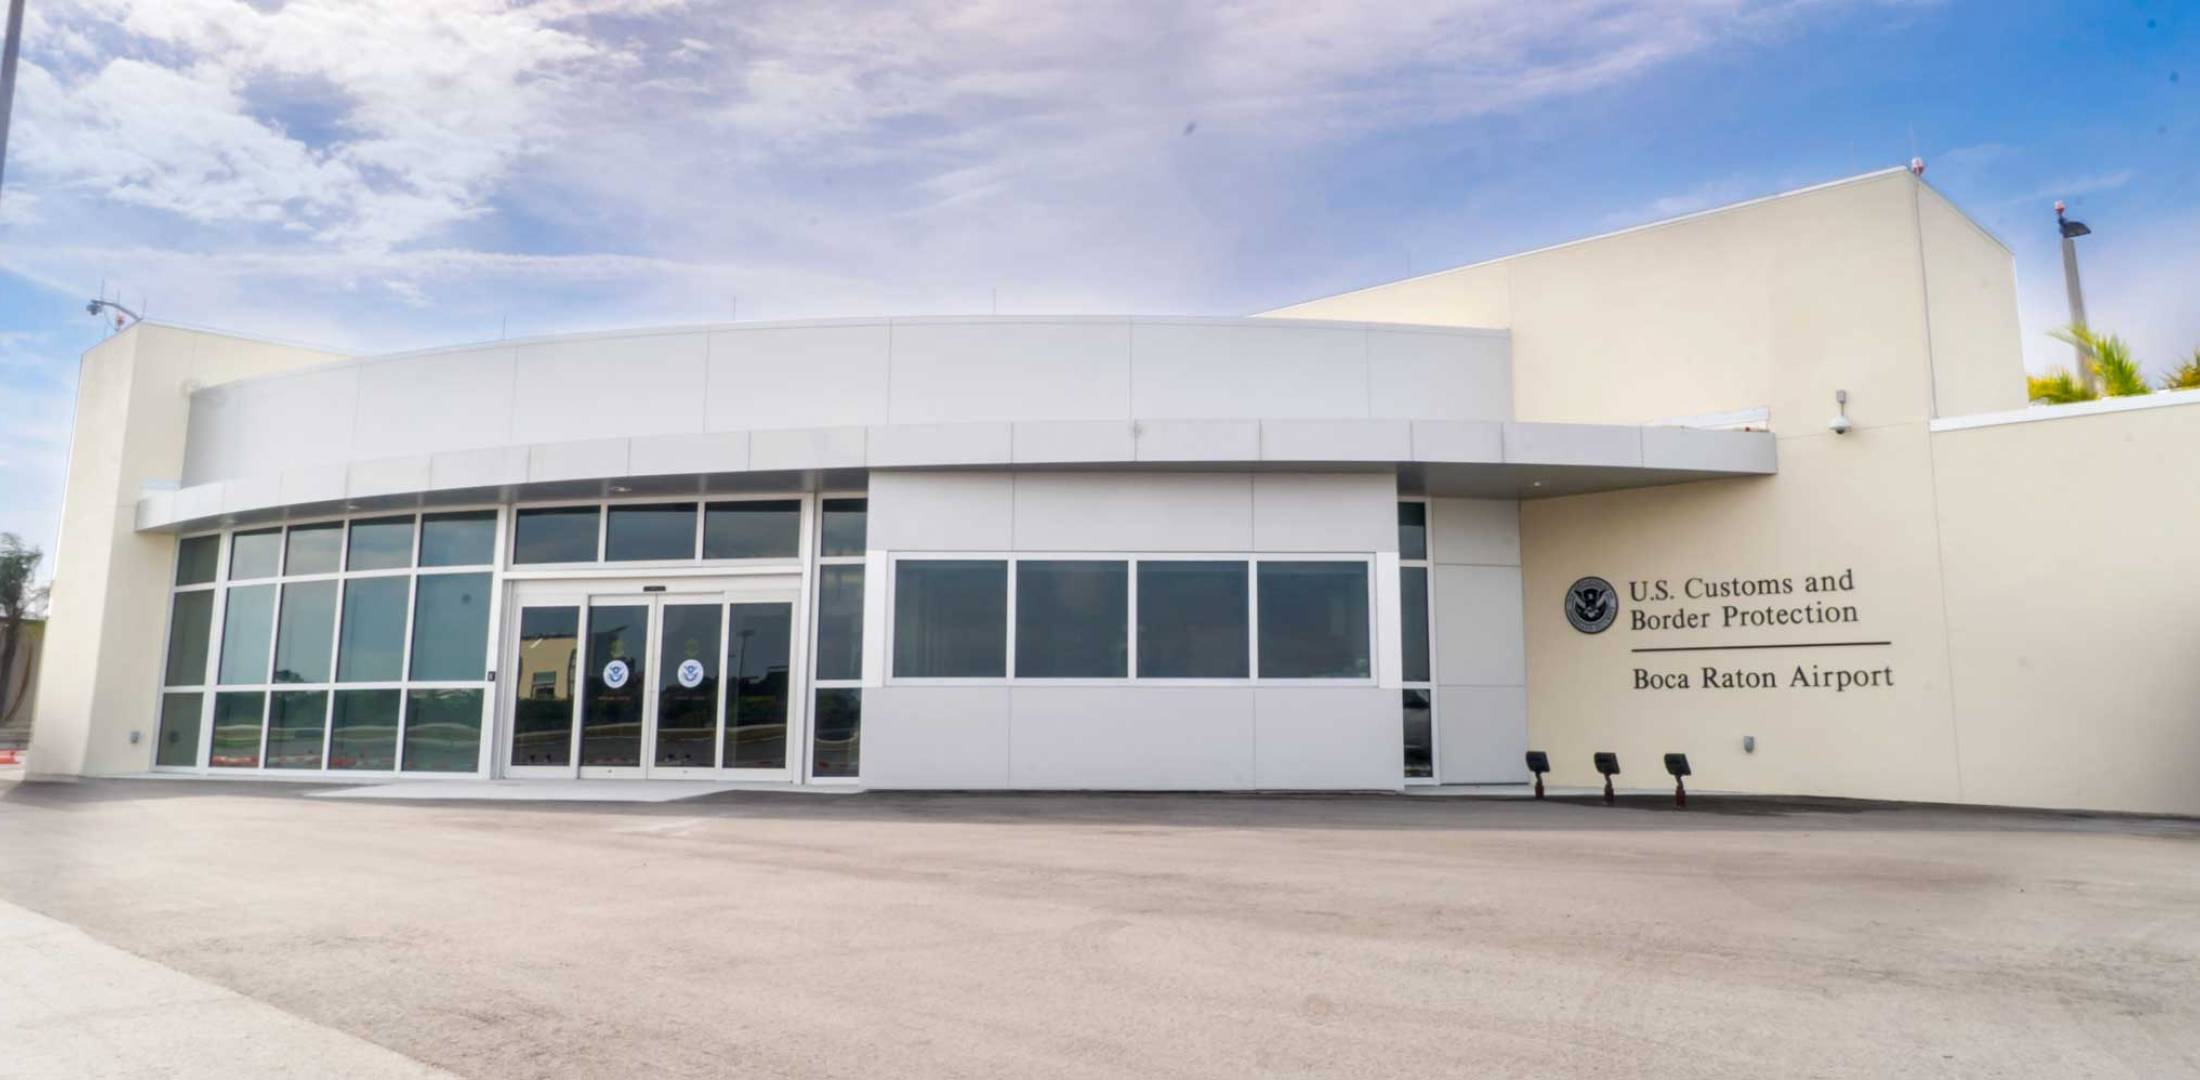 New CBP Facility at Boca Raton Airport